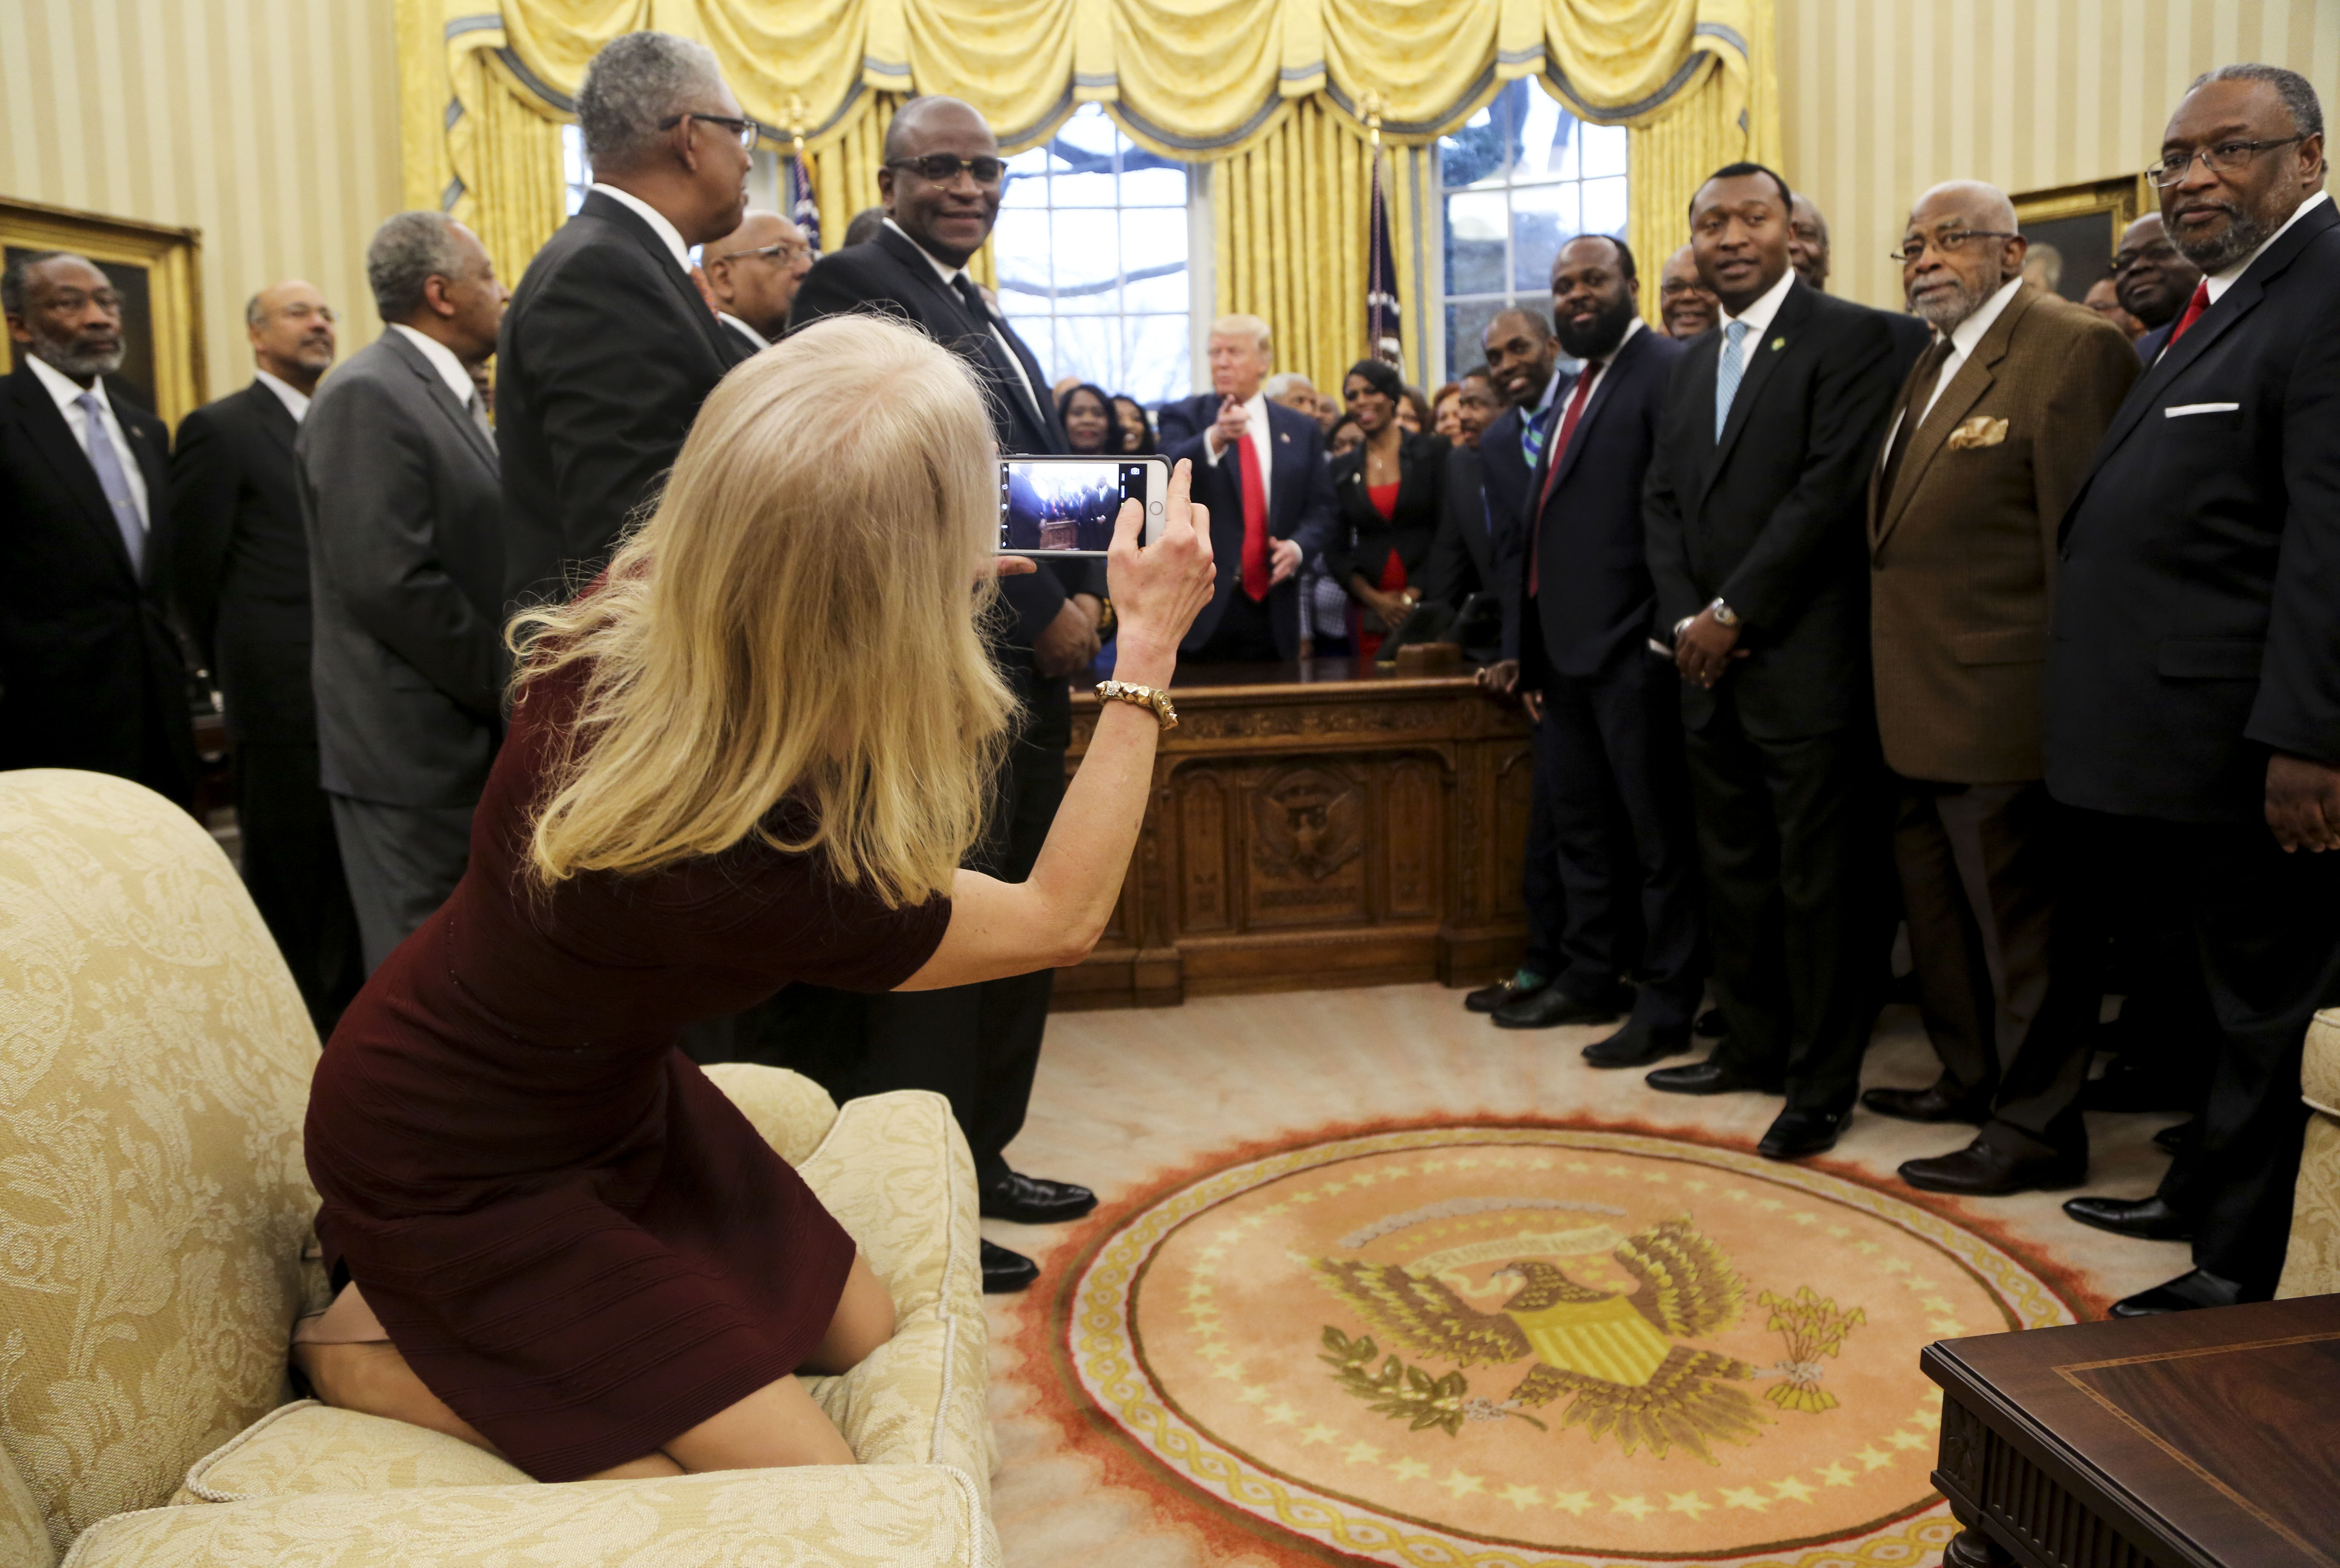 WASHINGTON, DC - FEBRUARY 27: Counselor to the President Kellyanne Conway takes a picture of U.S. President Donald Trump with members of the Historically Black Colleges and Universities in the Oval Office of the White House, on February 27, 2017 in Washington, DC. (Photo by Aude Guerrucci-Pool/Getty Images)